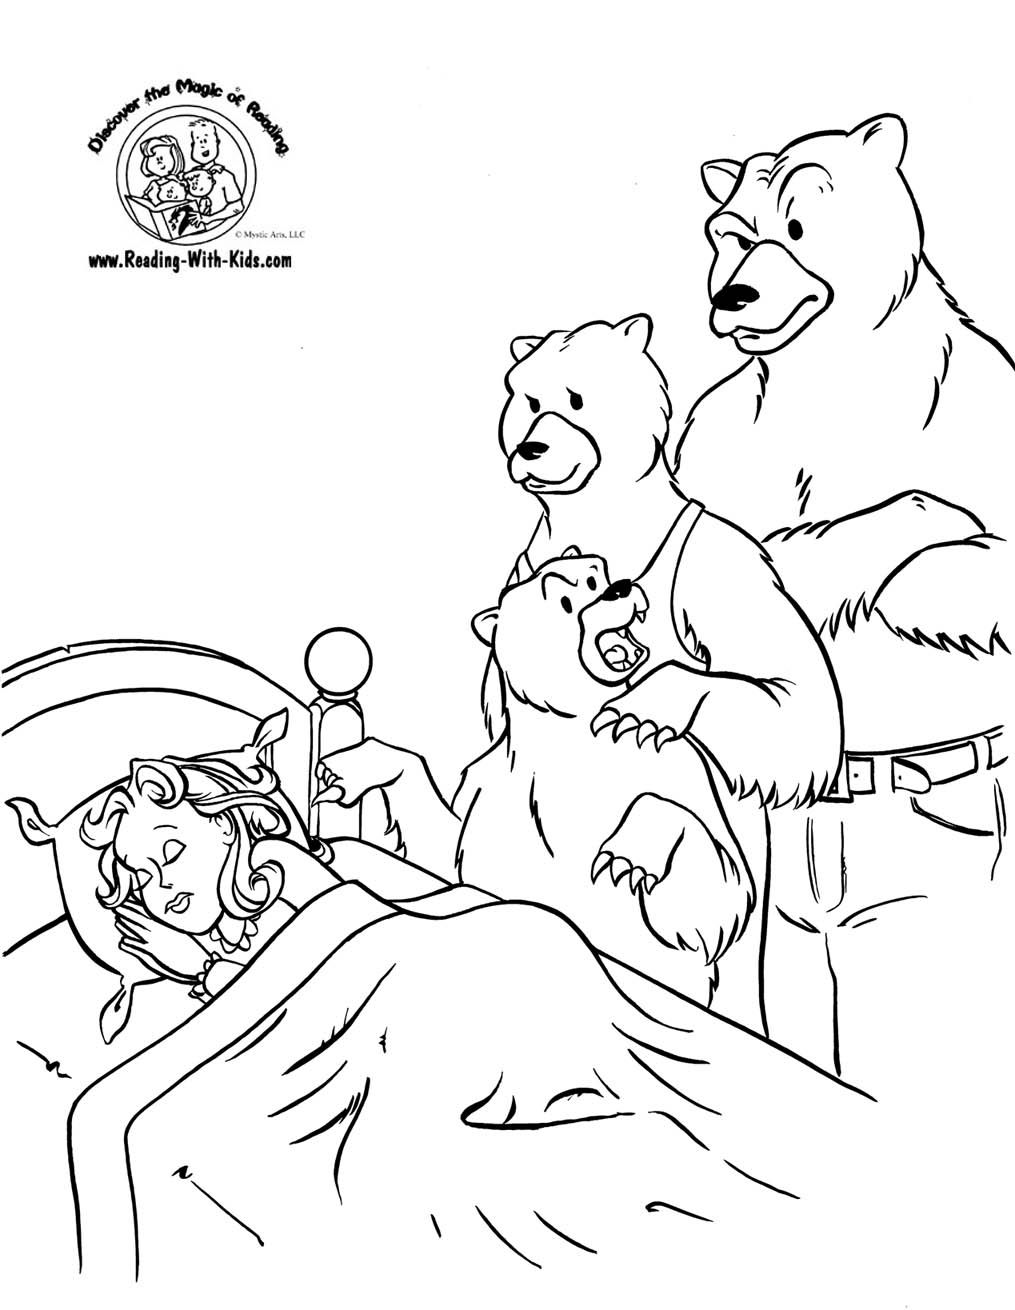 Coloring Pages Three Bears Coloring Pages goldilocks and the three bears coloring pages az little sheets page